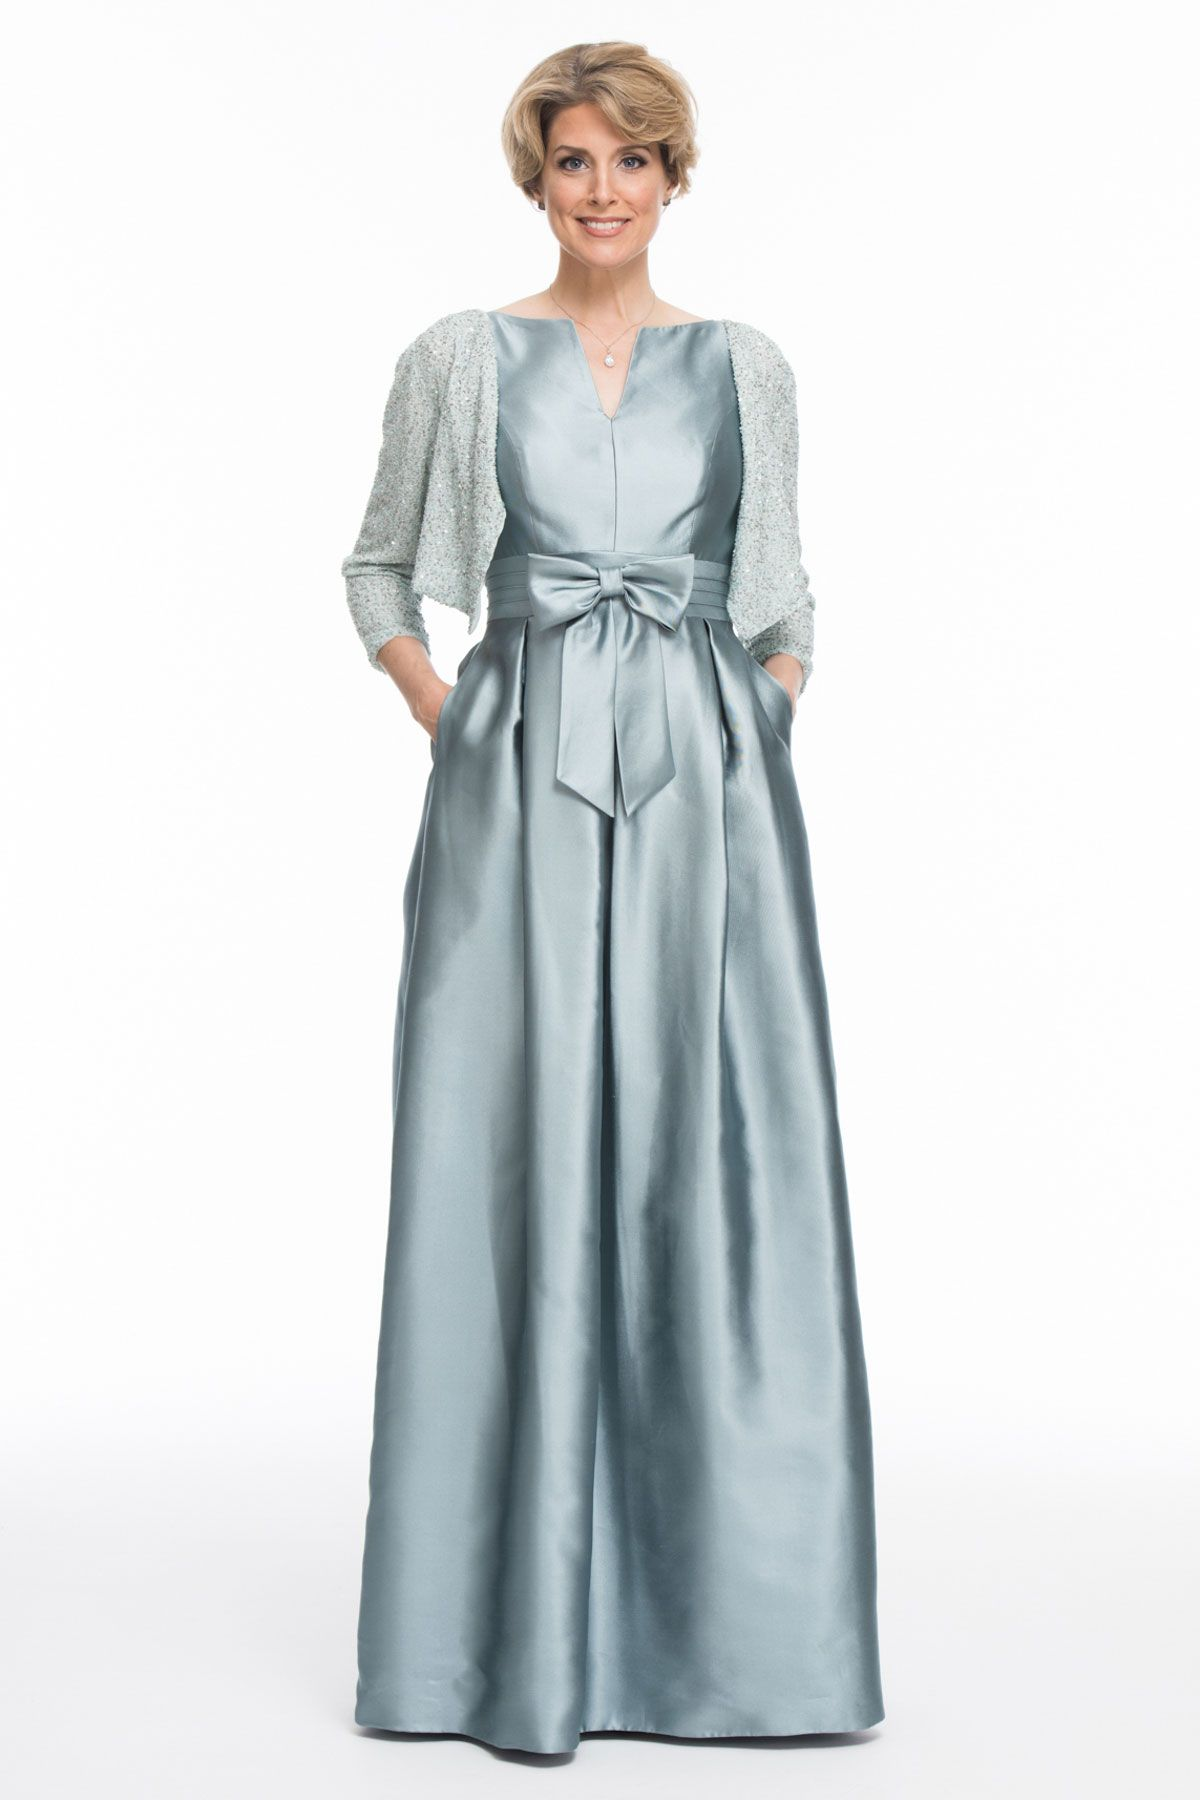 Long Shantung Silk Dress, Hand Beaded Cardigan | mother of the groom ...